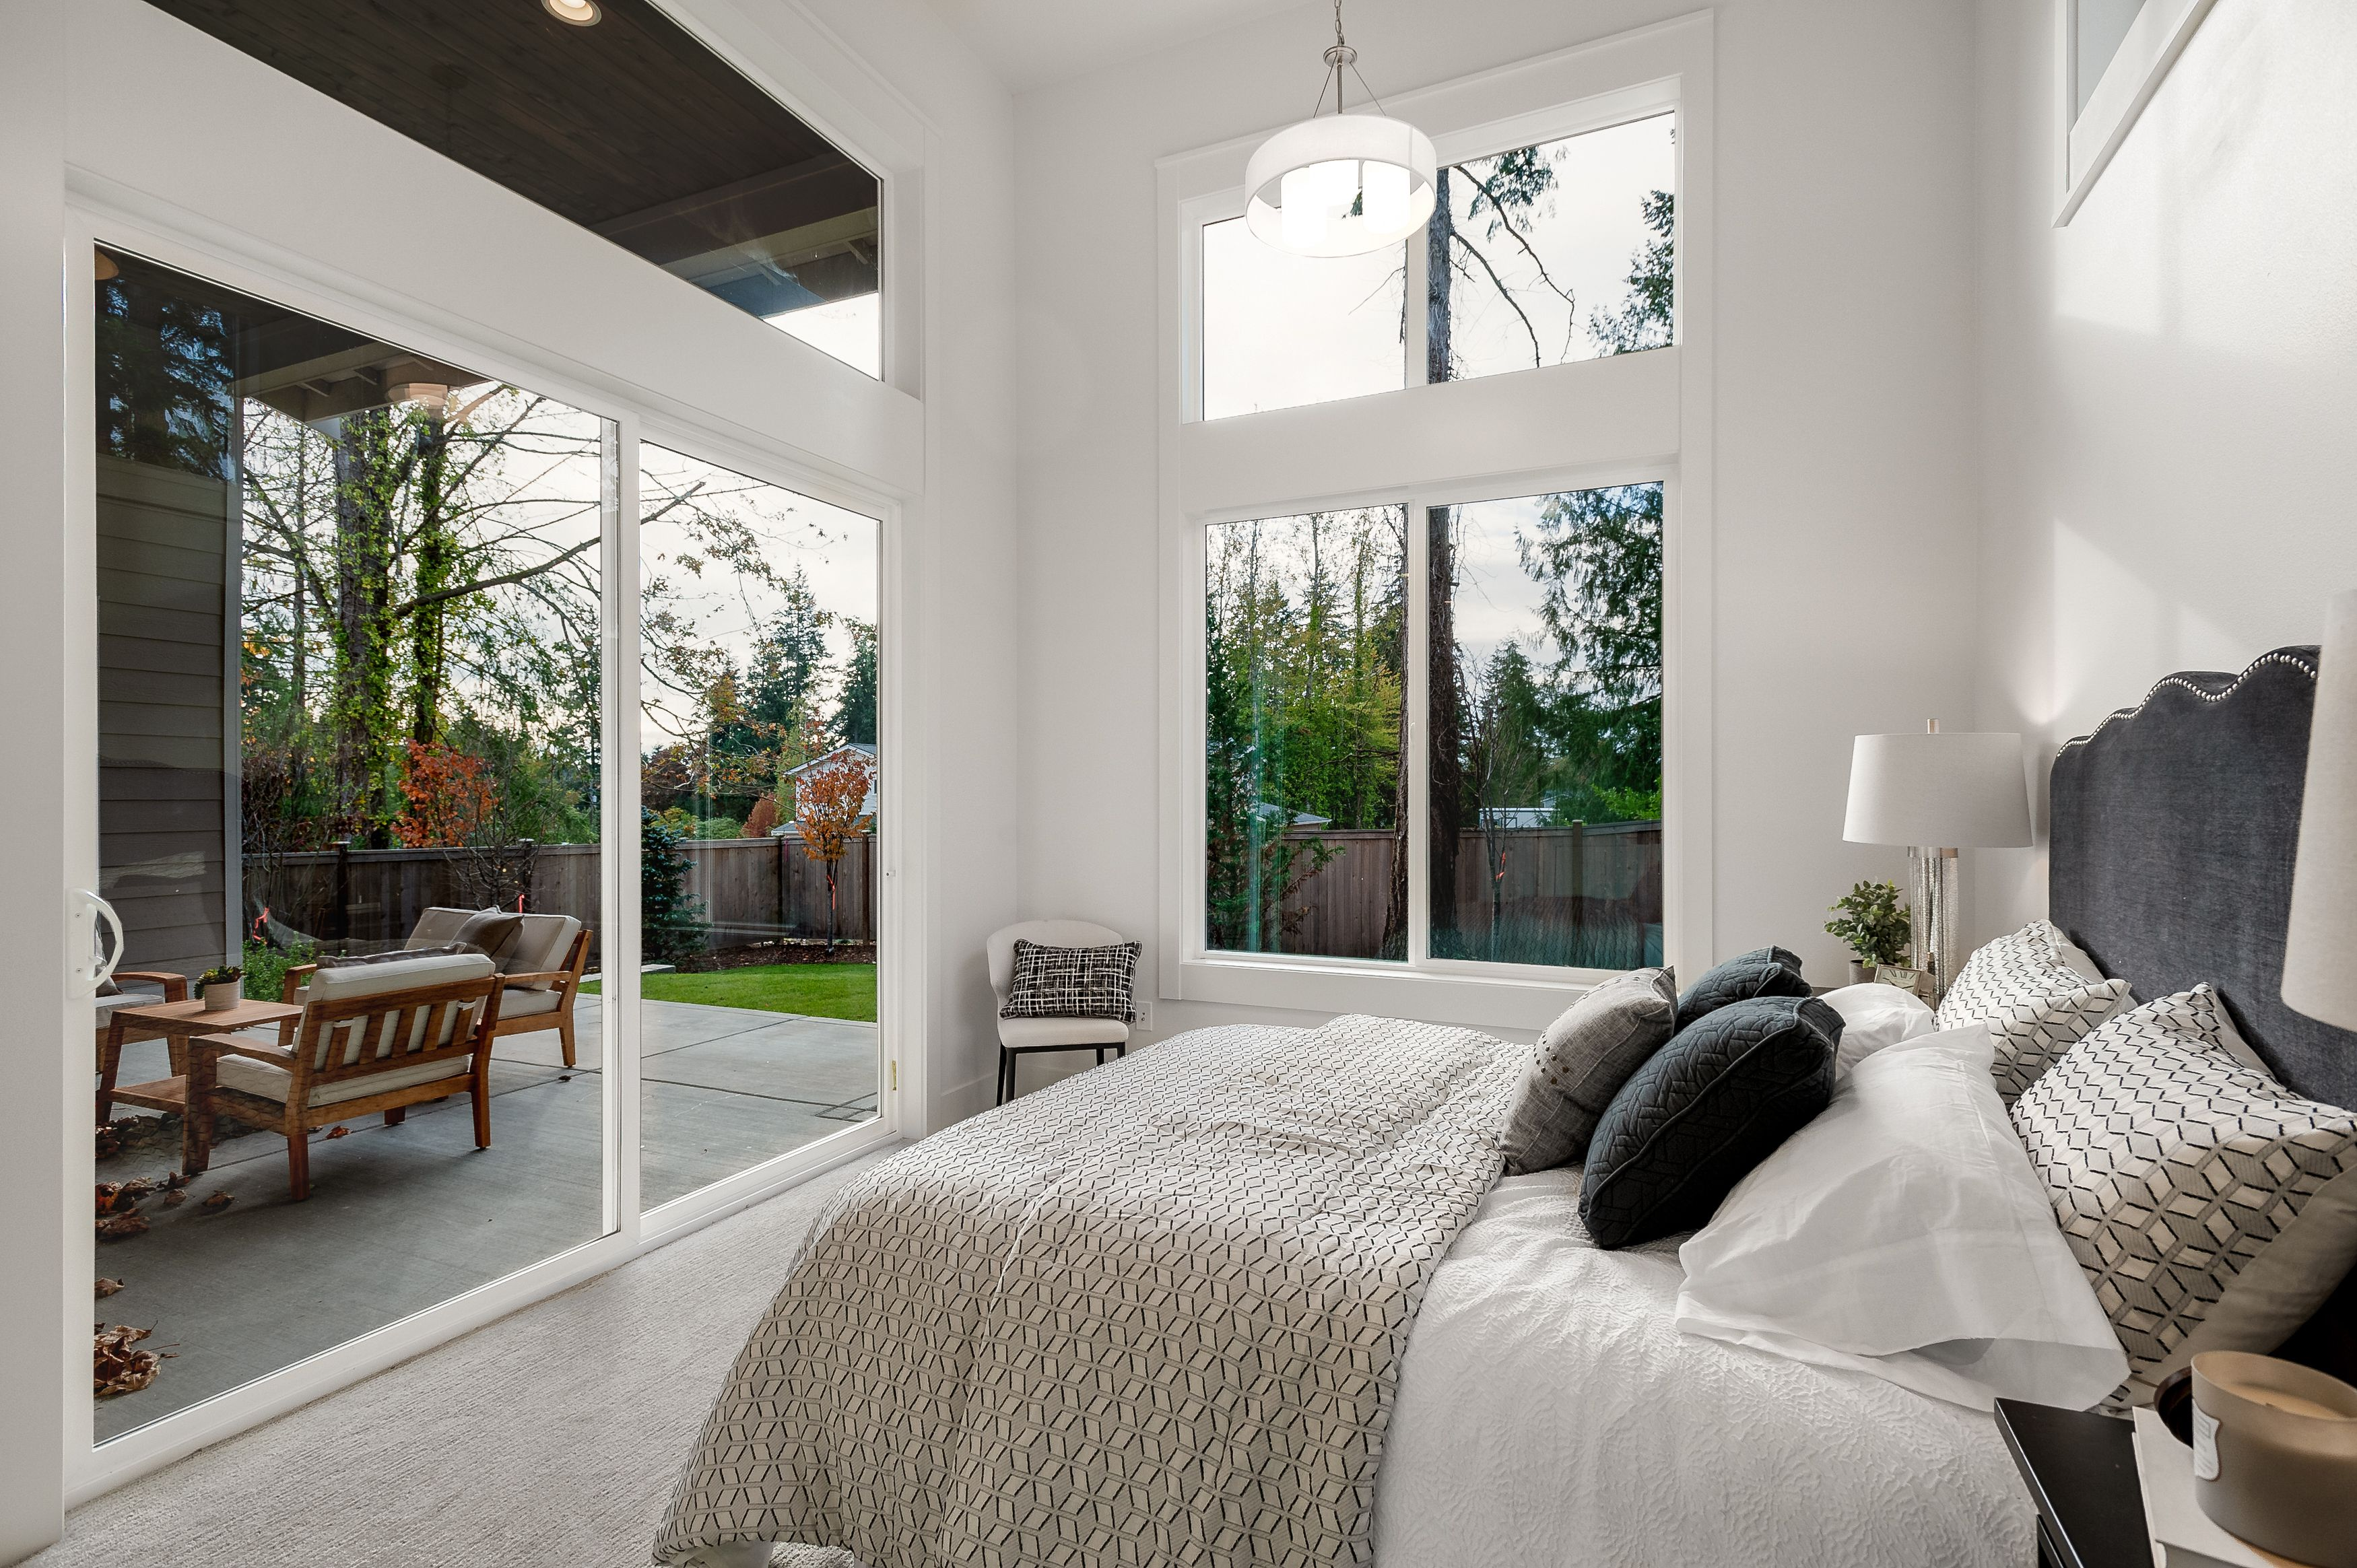 Bedroom featured in the Homesite 6 Birch By Millennial Builders in Bremerton, WA